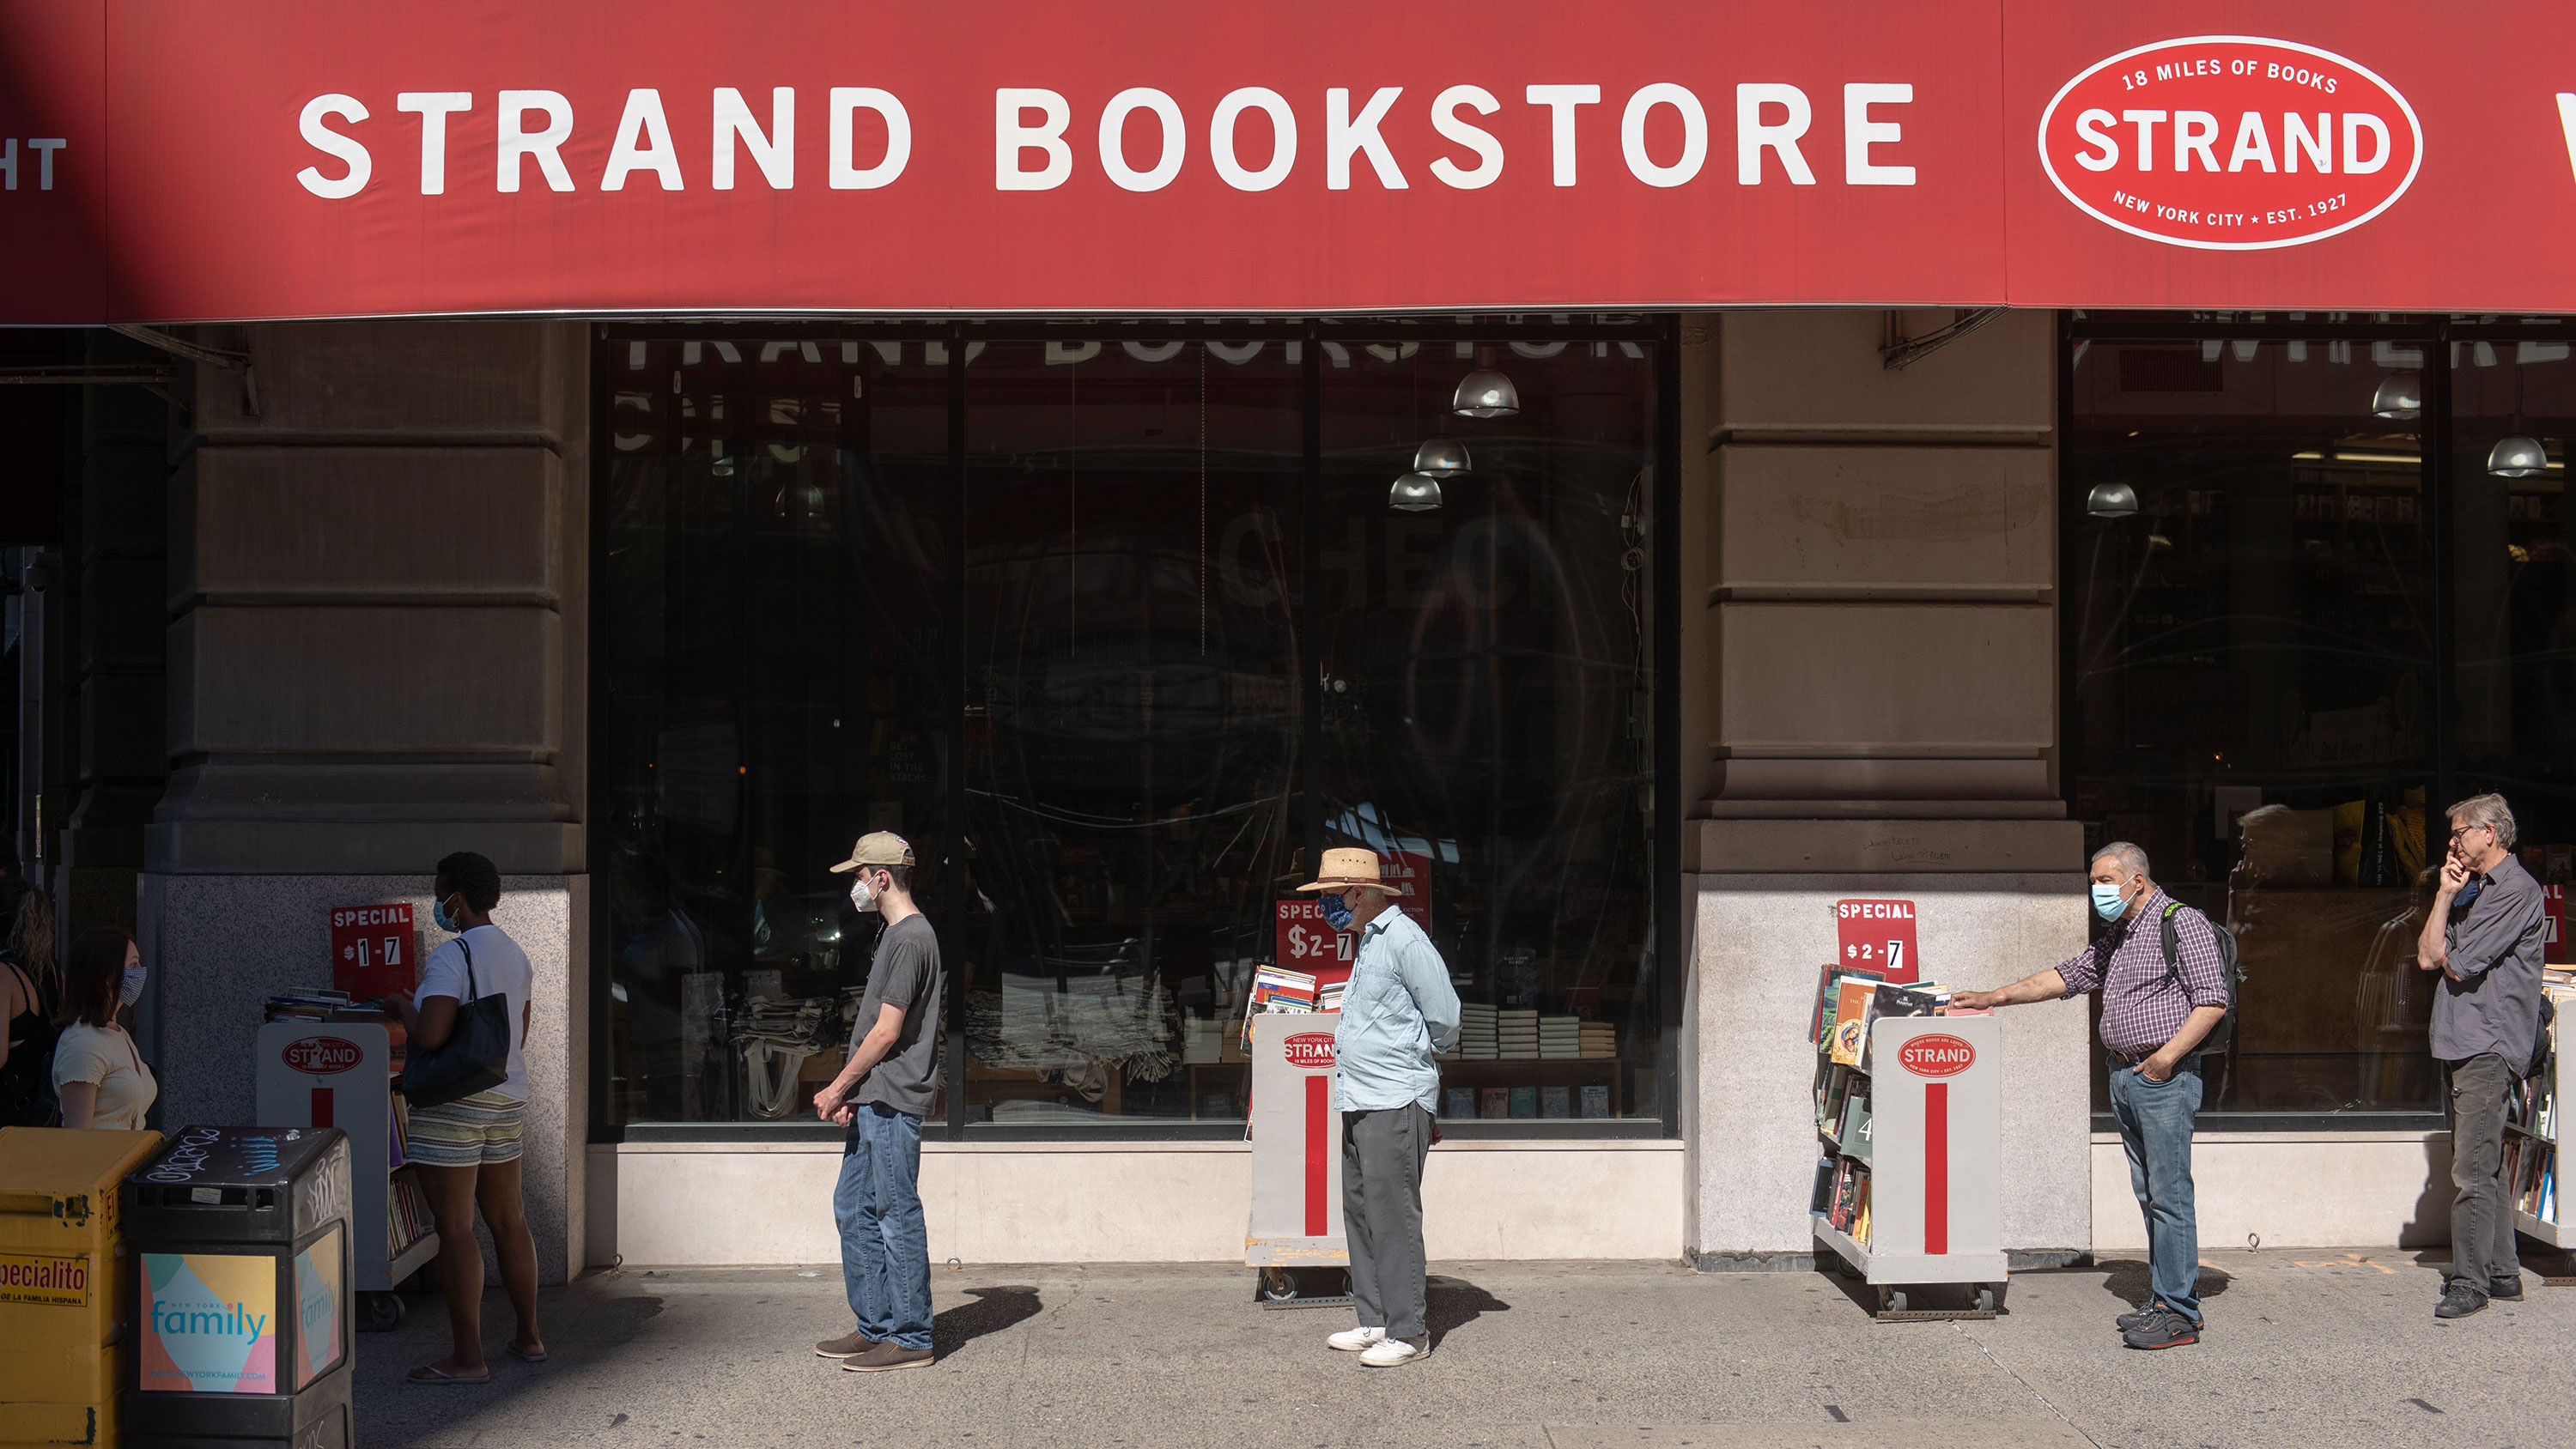 New York's famous Strand bookstore says it could become a Covid casualty